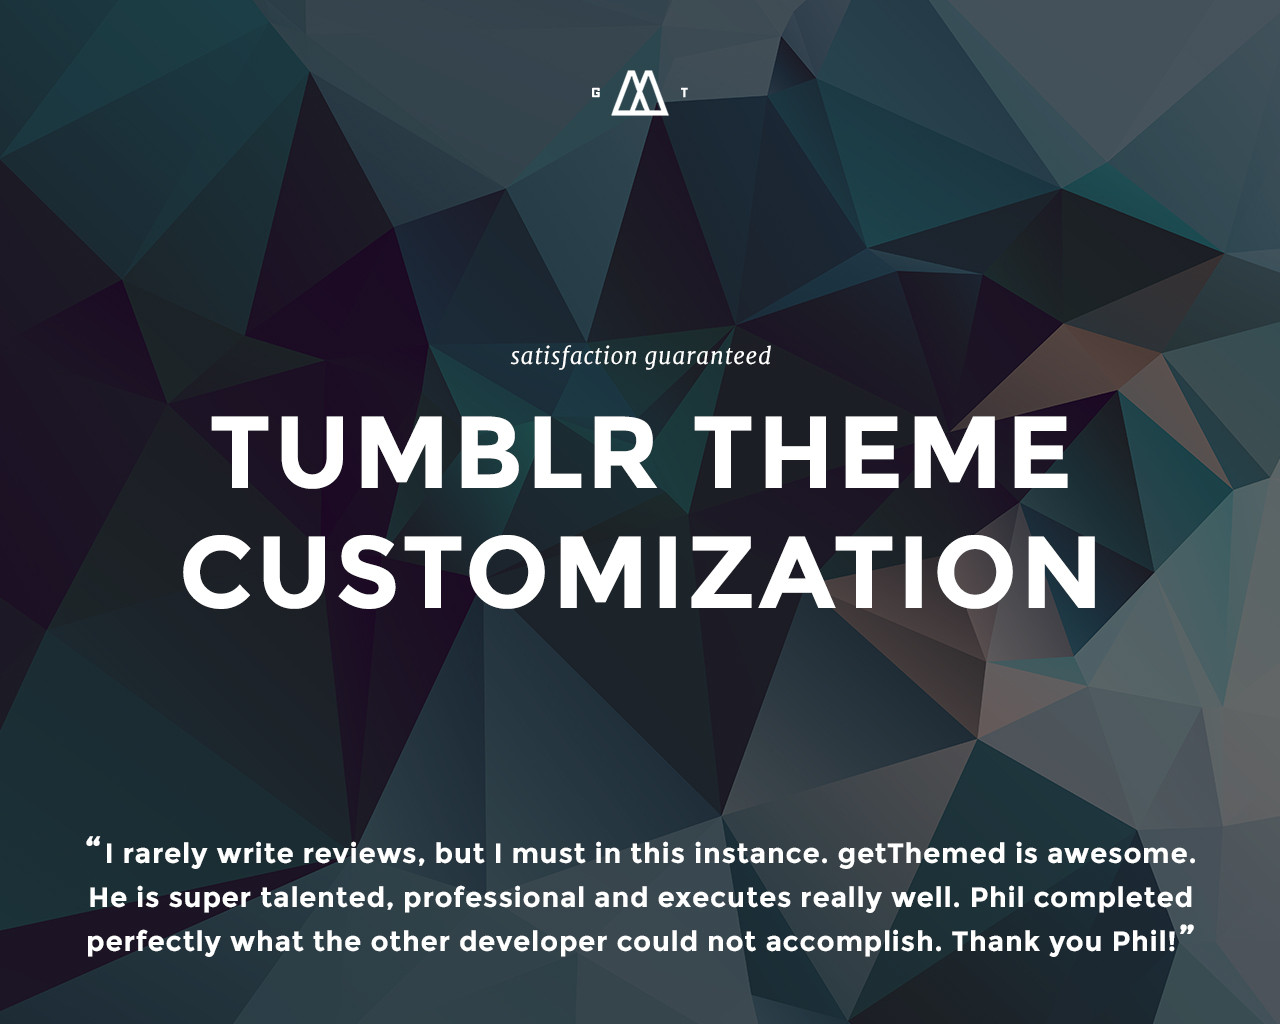 Tumblr Theme Customization by getThemed - 83491